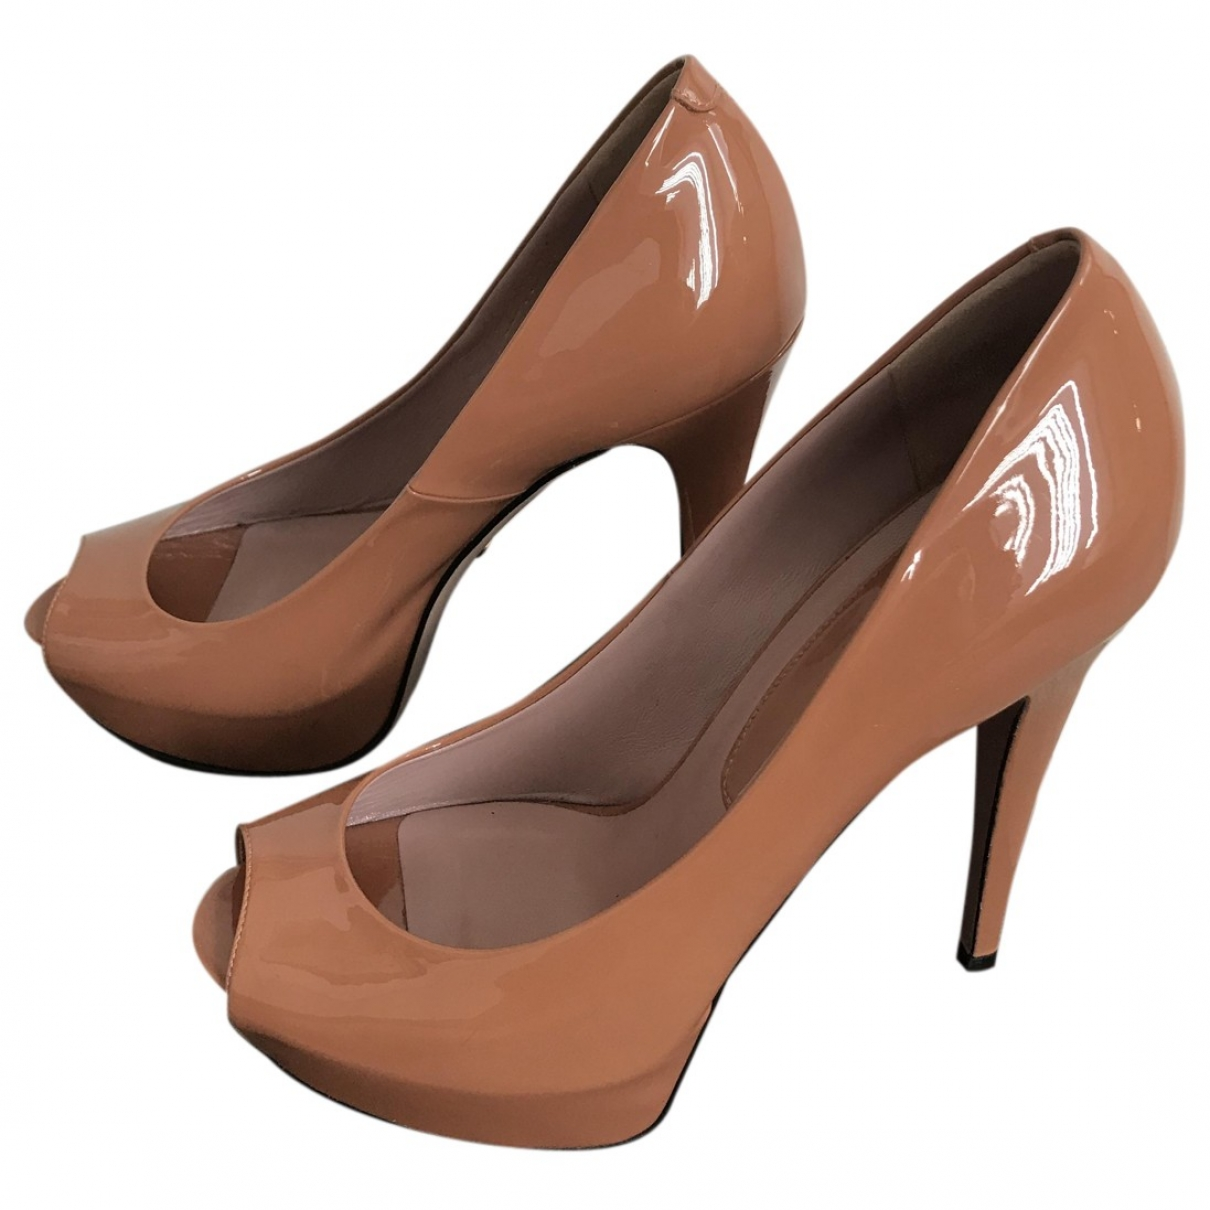 Gucci \N Patent leather Heels for Women 5.5 UK